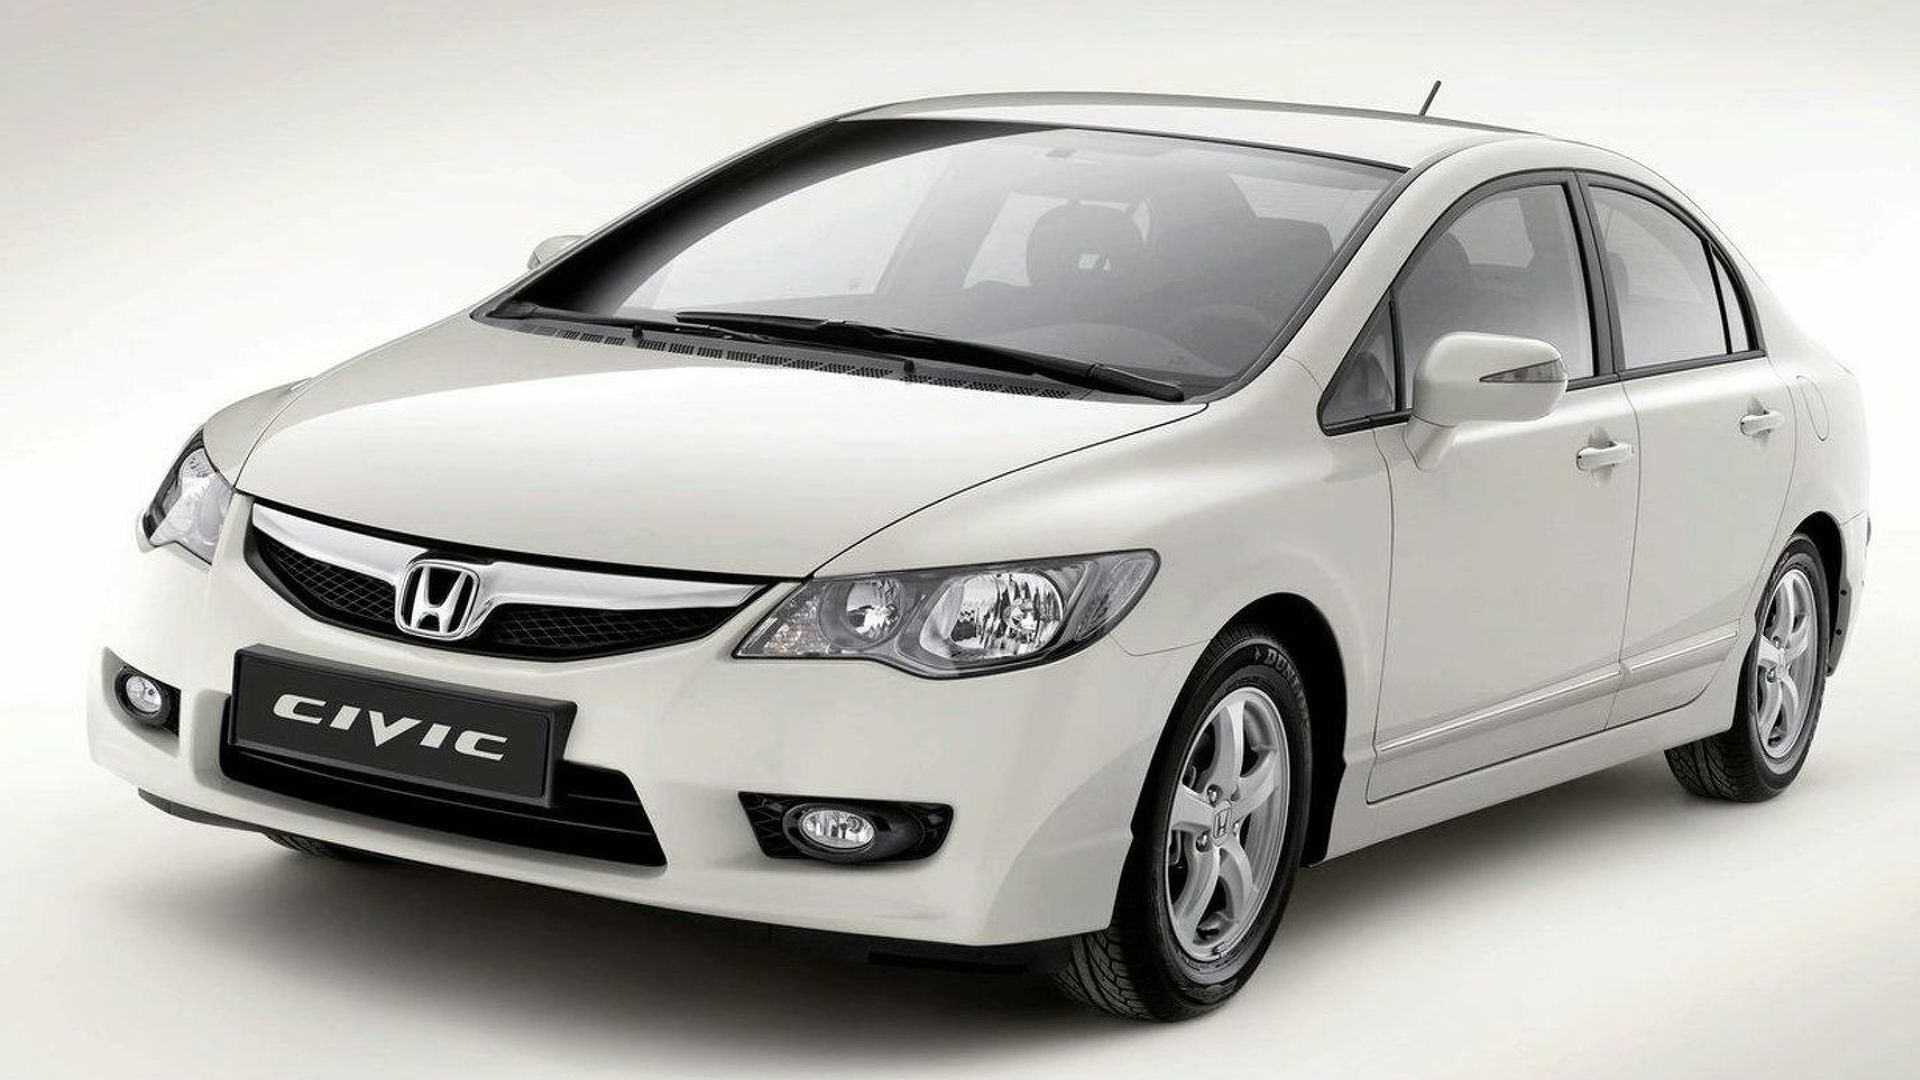 Honda Civic Rebon For rent